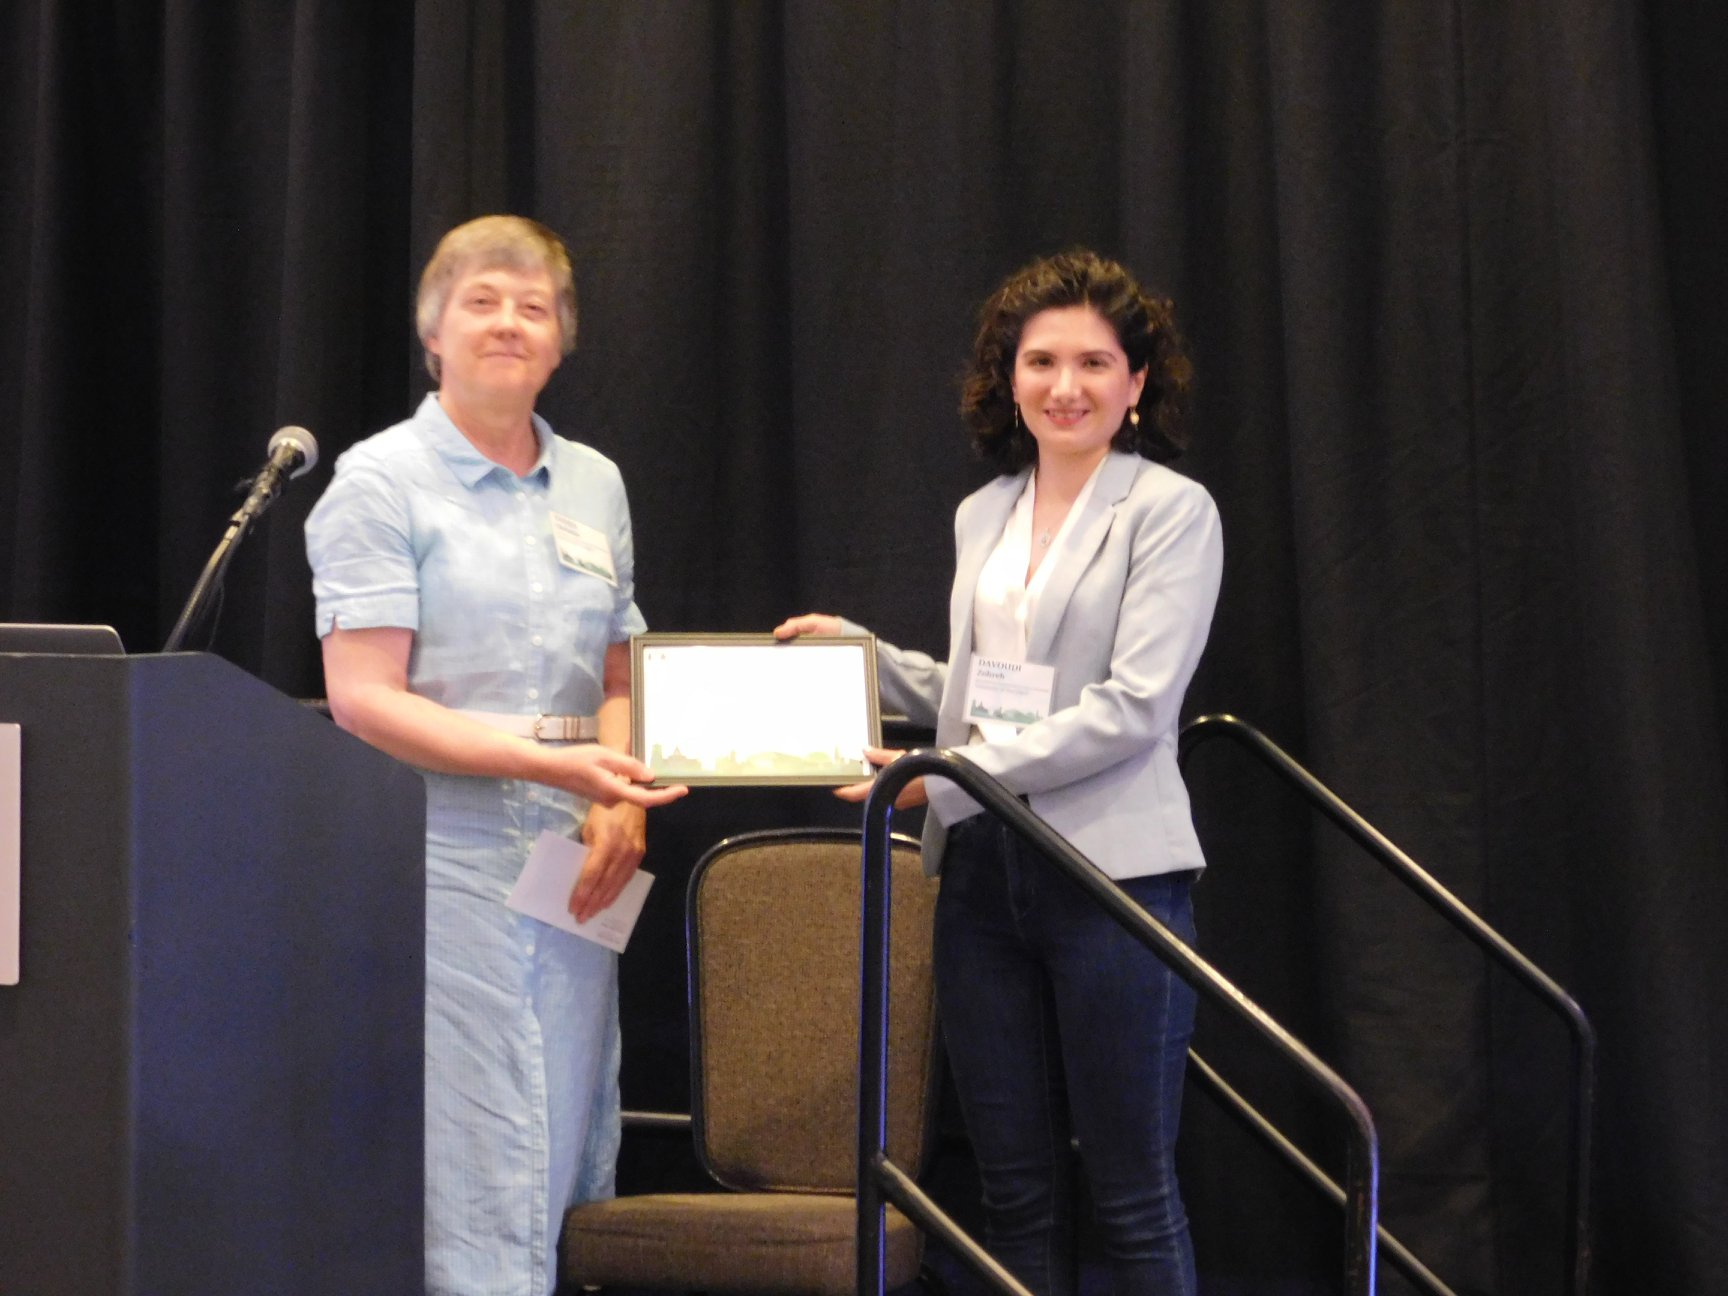 zohreh receiving Ken Wilson Lattice Award